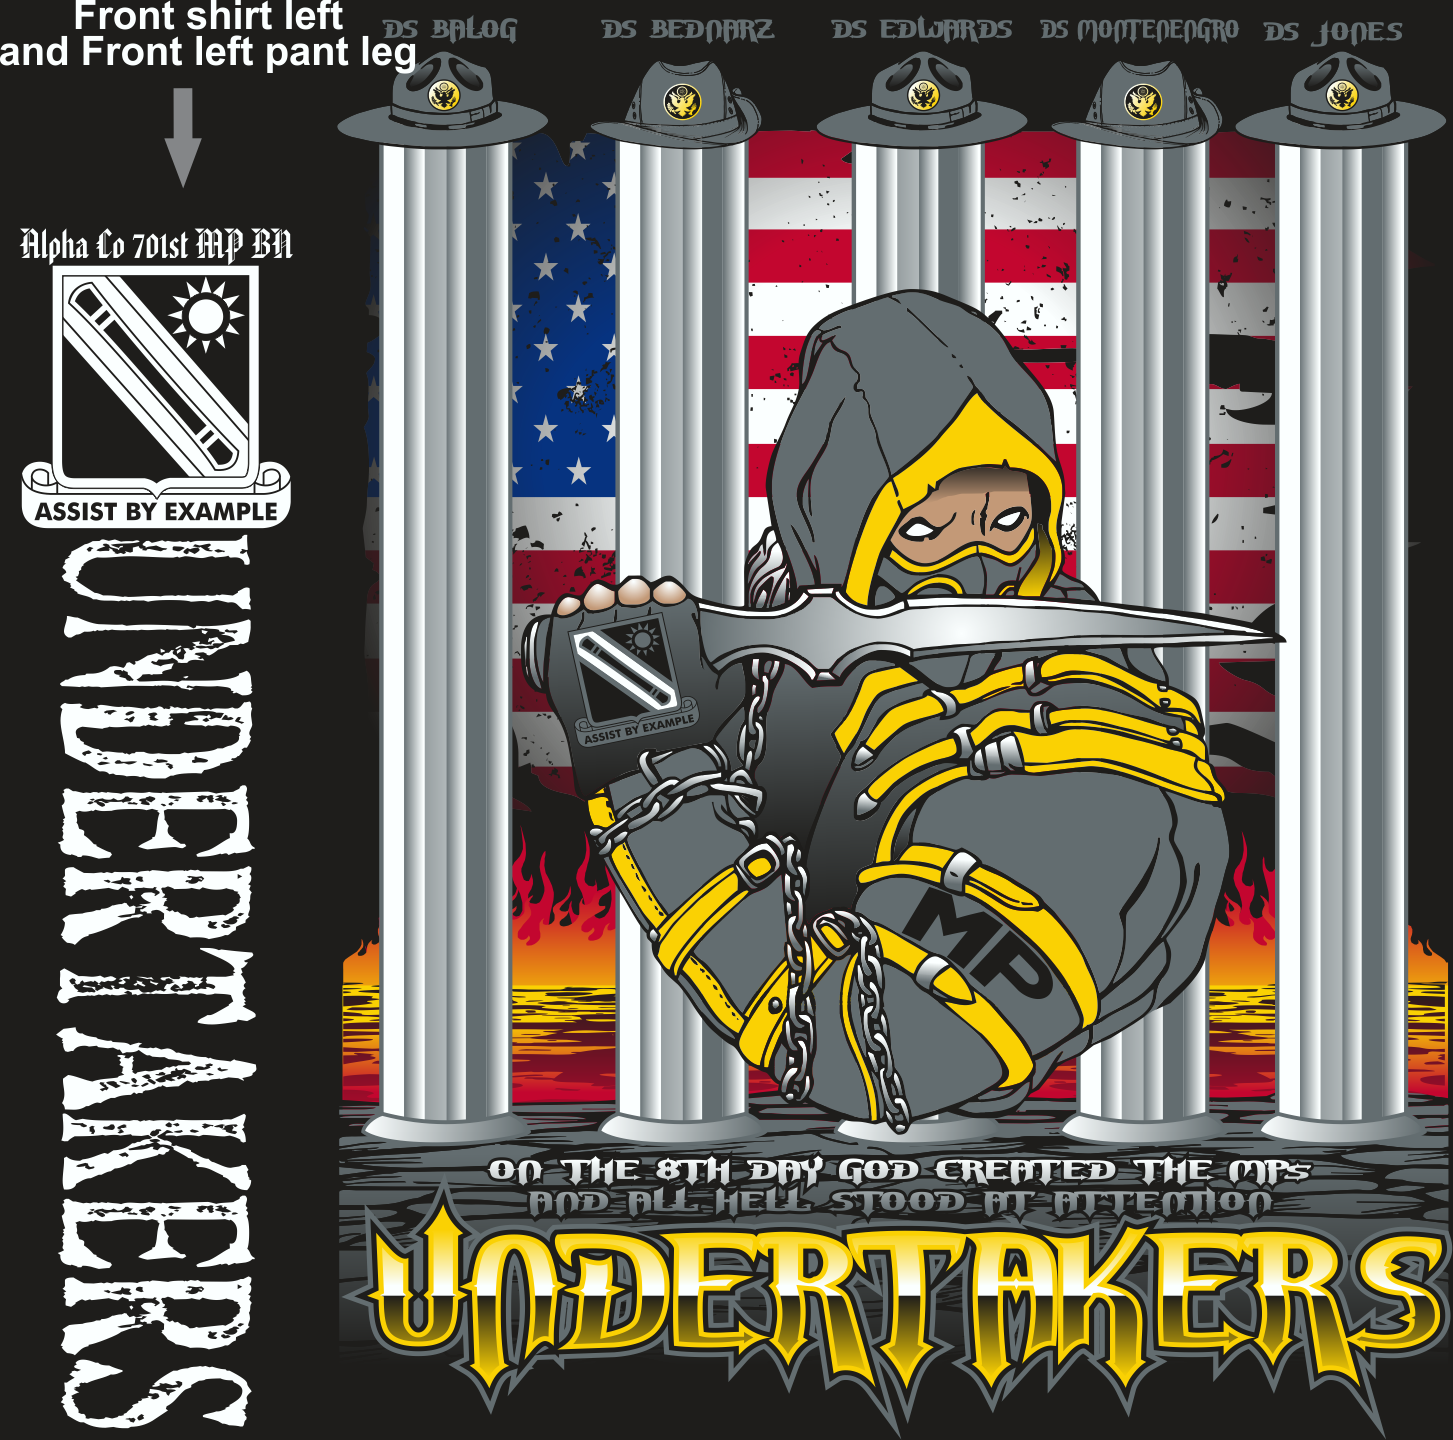 ALPHA 701ST UNDERTAKERS GRADUATING 7-16-2015 digital